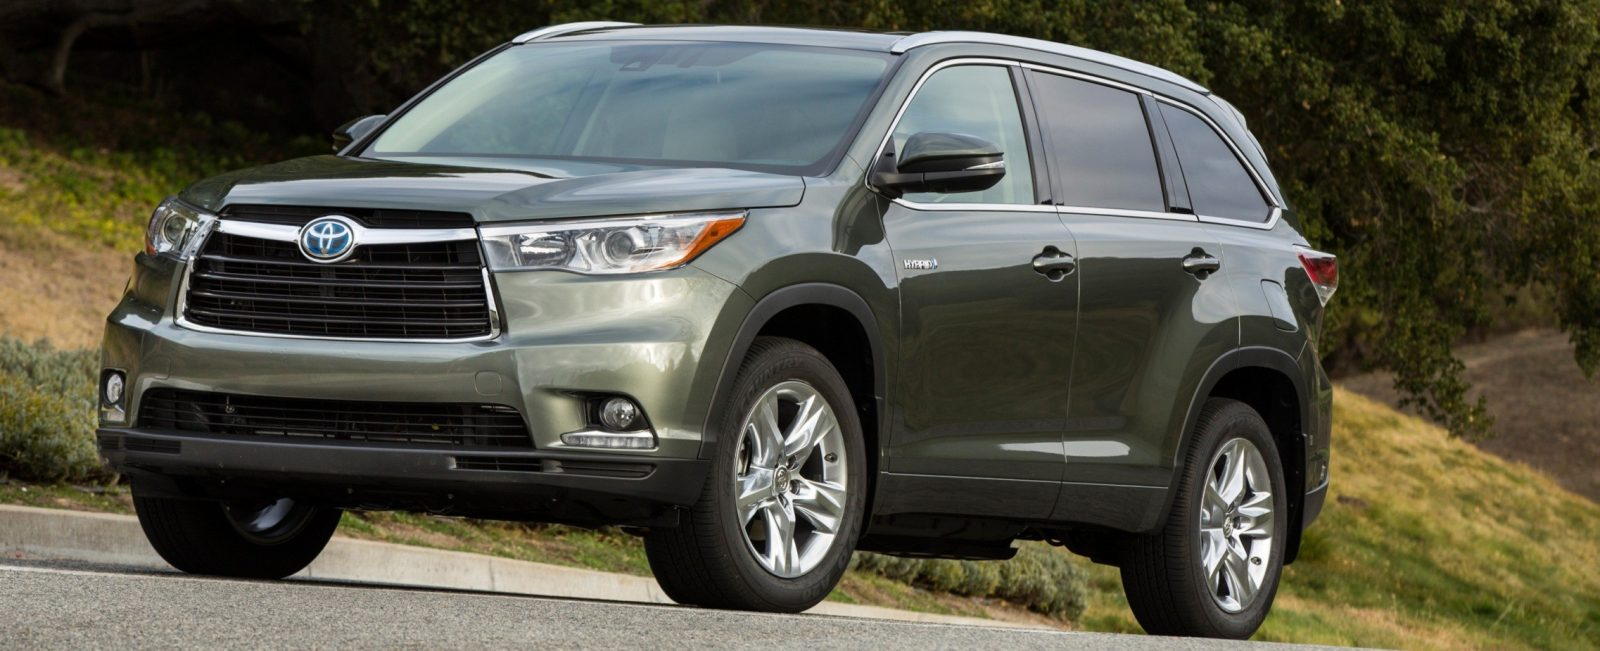 Carrevsdaily 2014 toyota highlander exterior photo10 Toyota highlander 2014 exterior